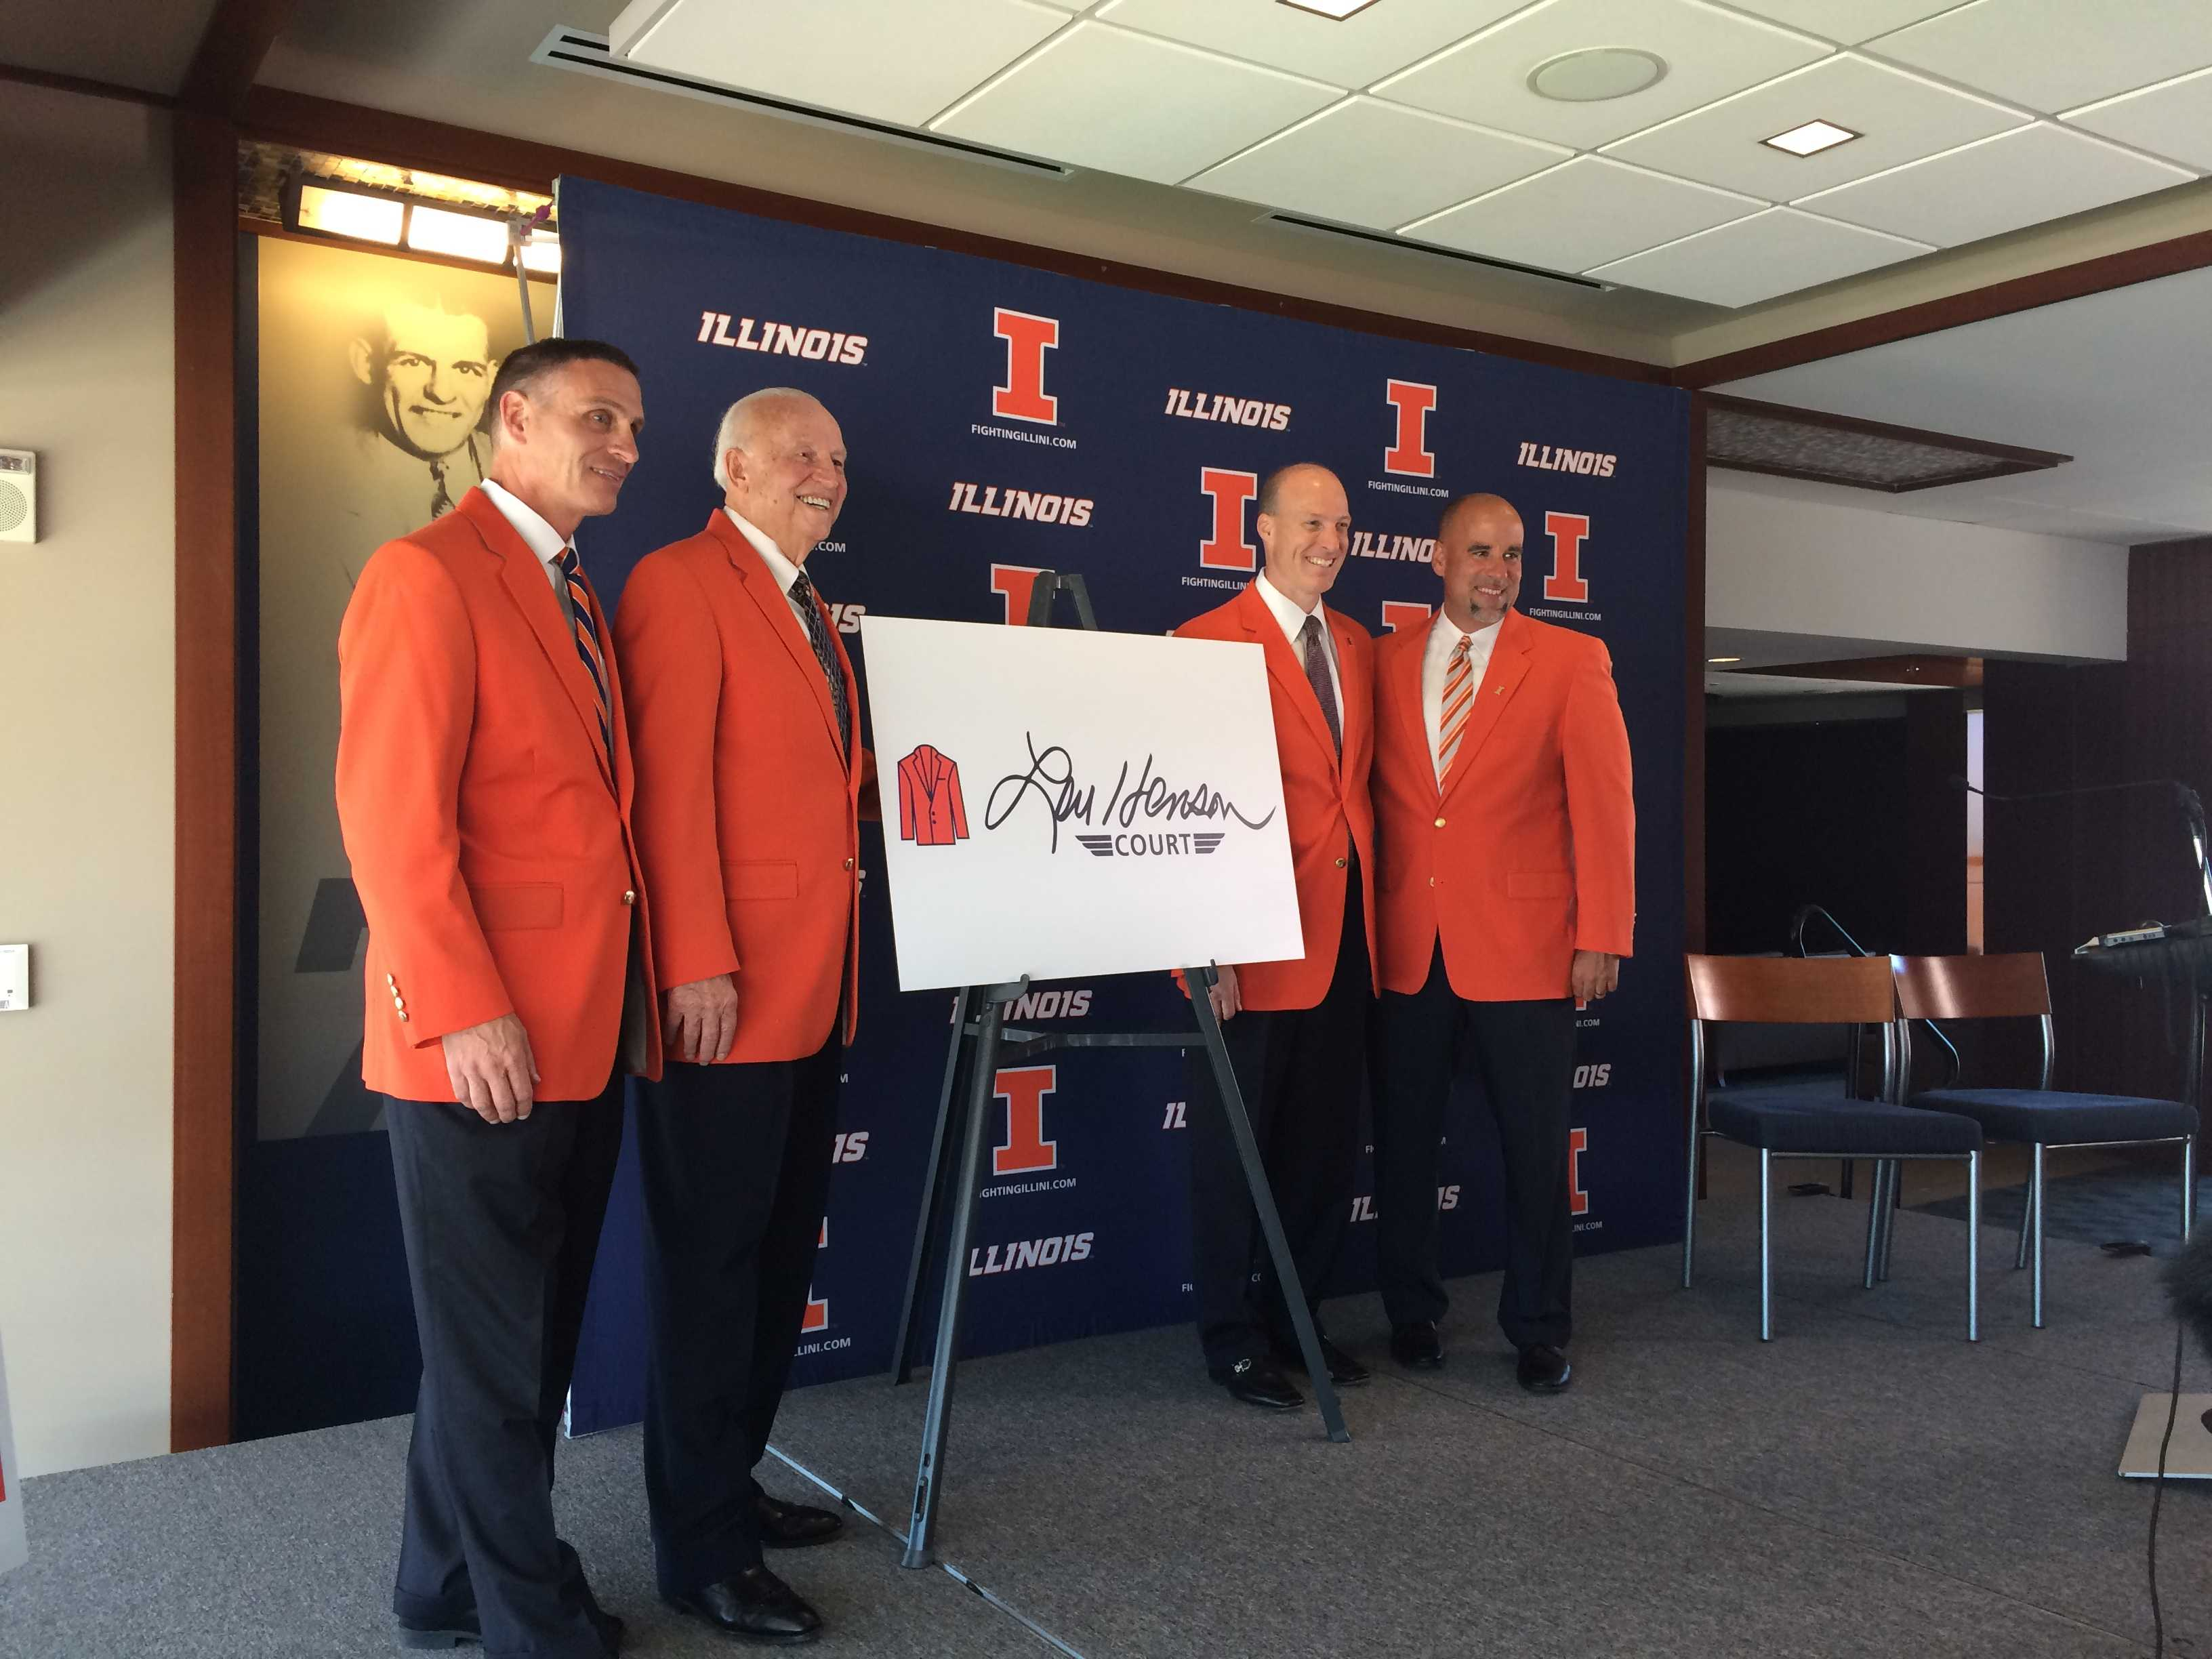 Illinois athletic director Mike Thomas, Lou Henson, Illinoismen's basketballheadcoach John Groce, andIllinoiswomen's basketballheadcoach Matt Bollant at the ceremony announcing the naming of State Farm Center's court